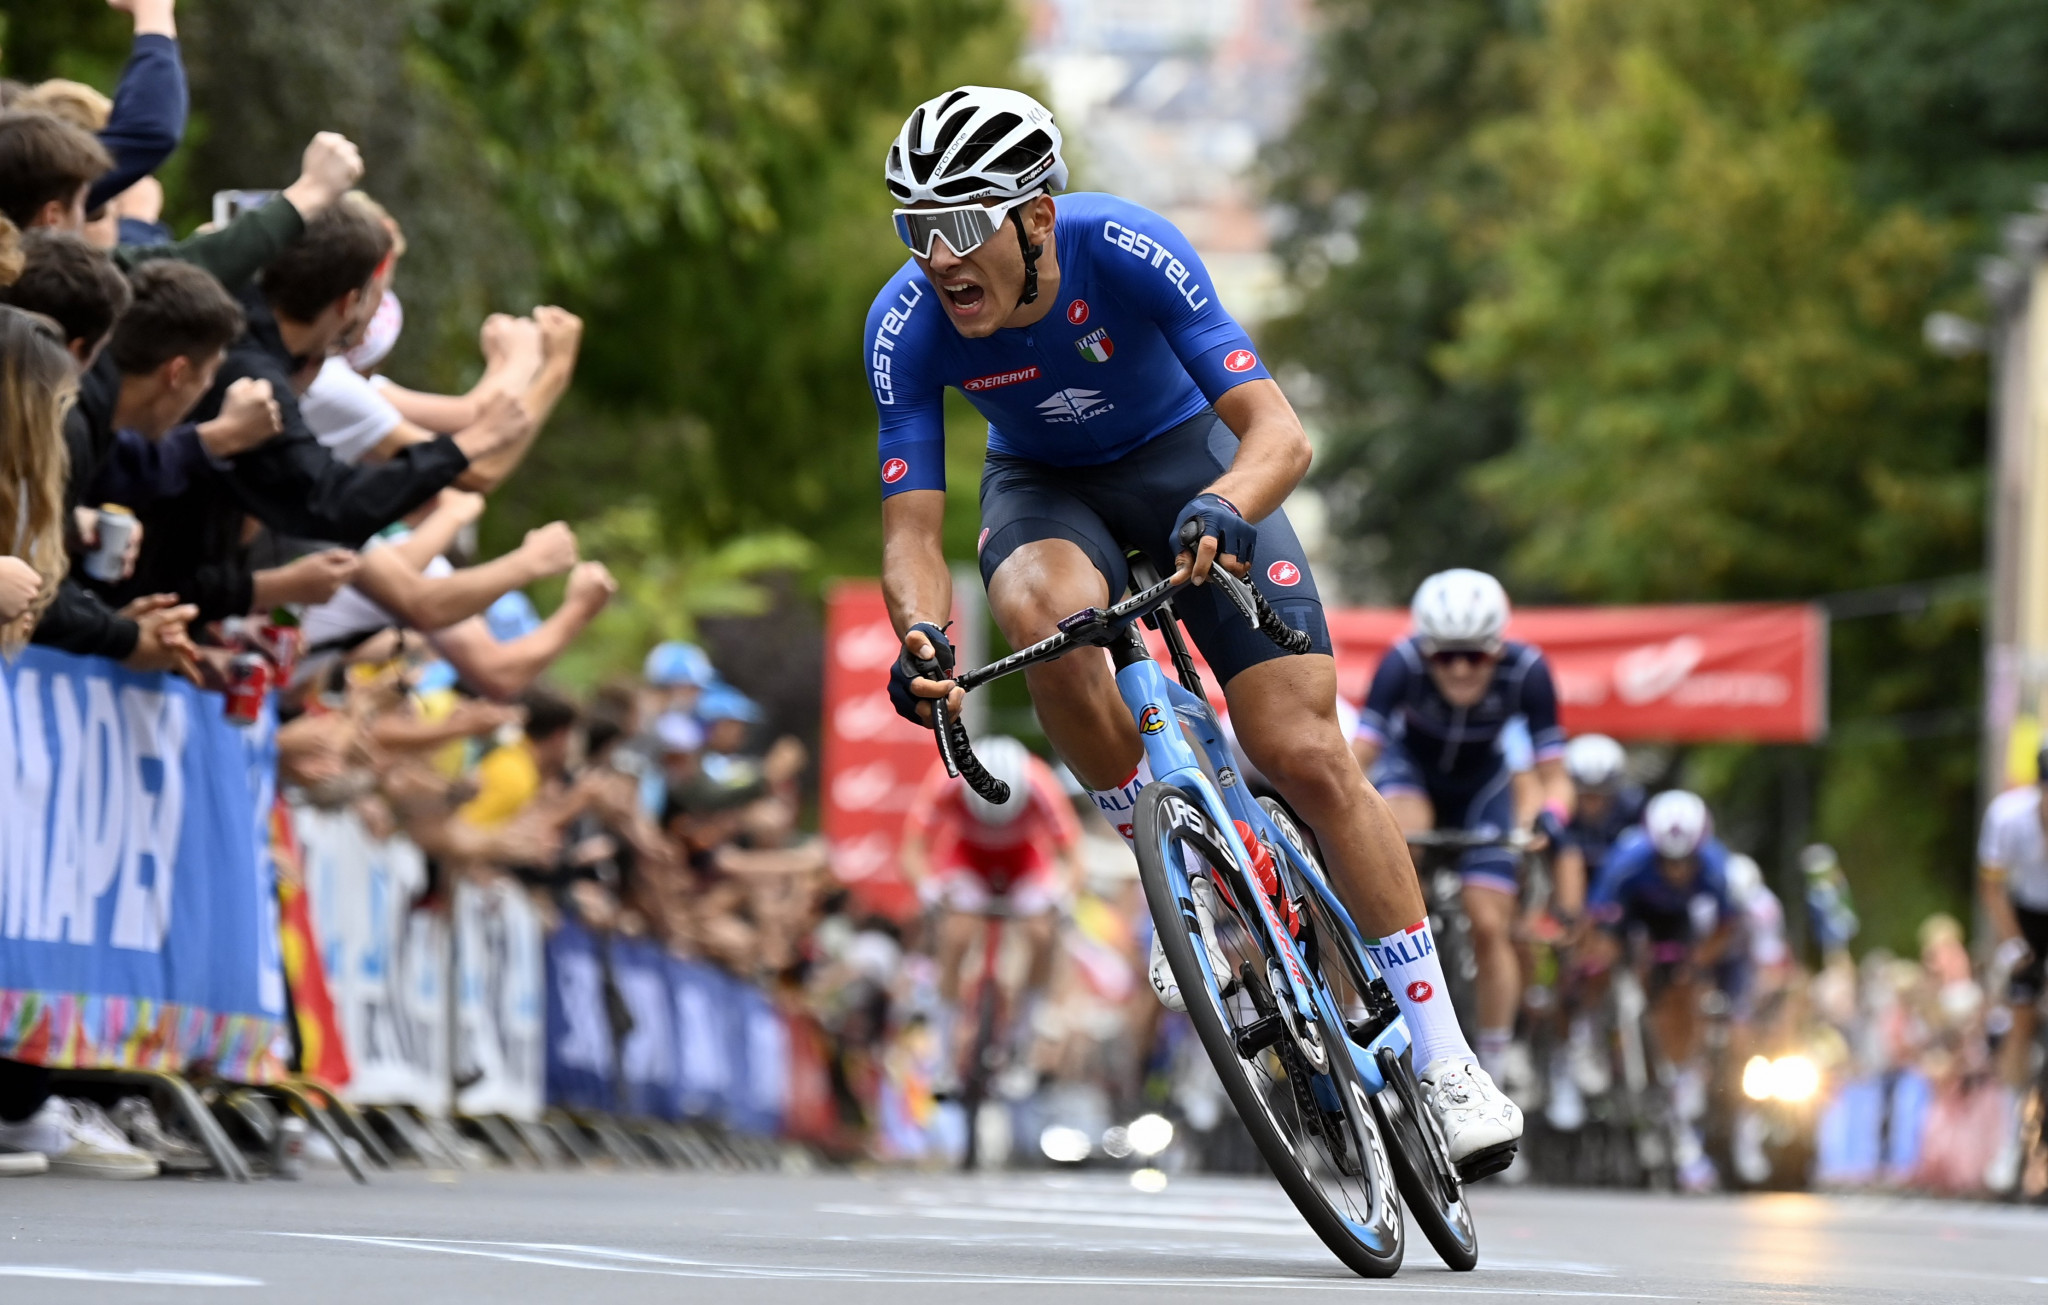 Hagenes, Baroncini win titles as Eritrea clinch first ever medal at UCI Road World Championships